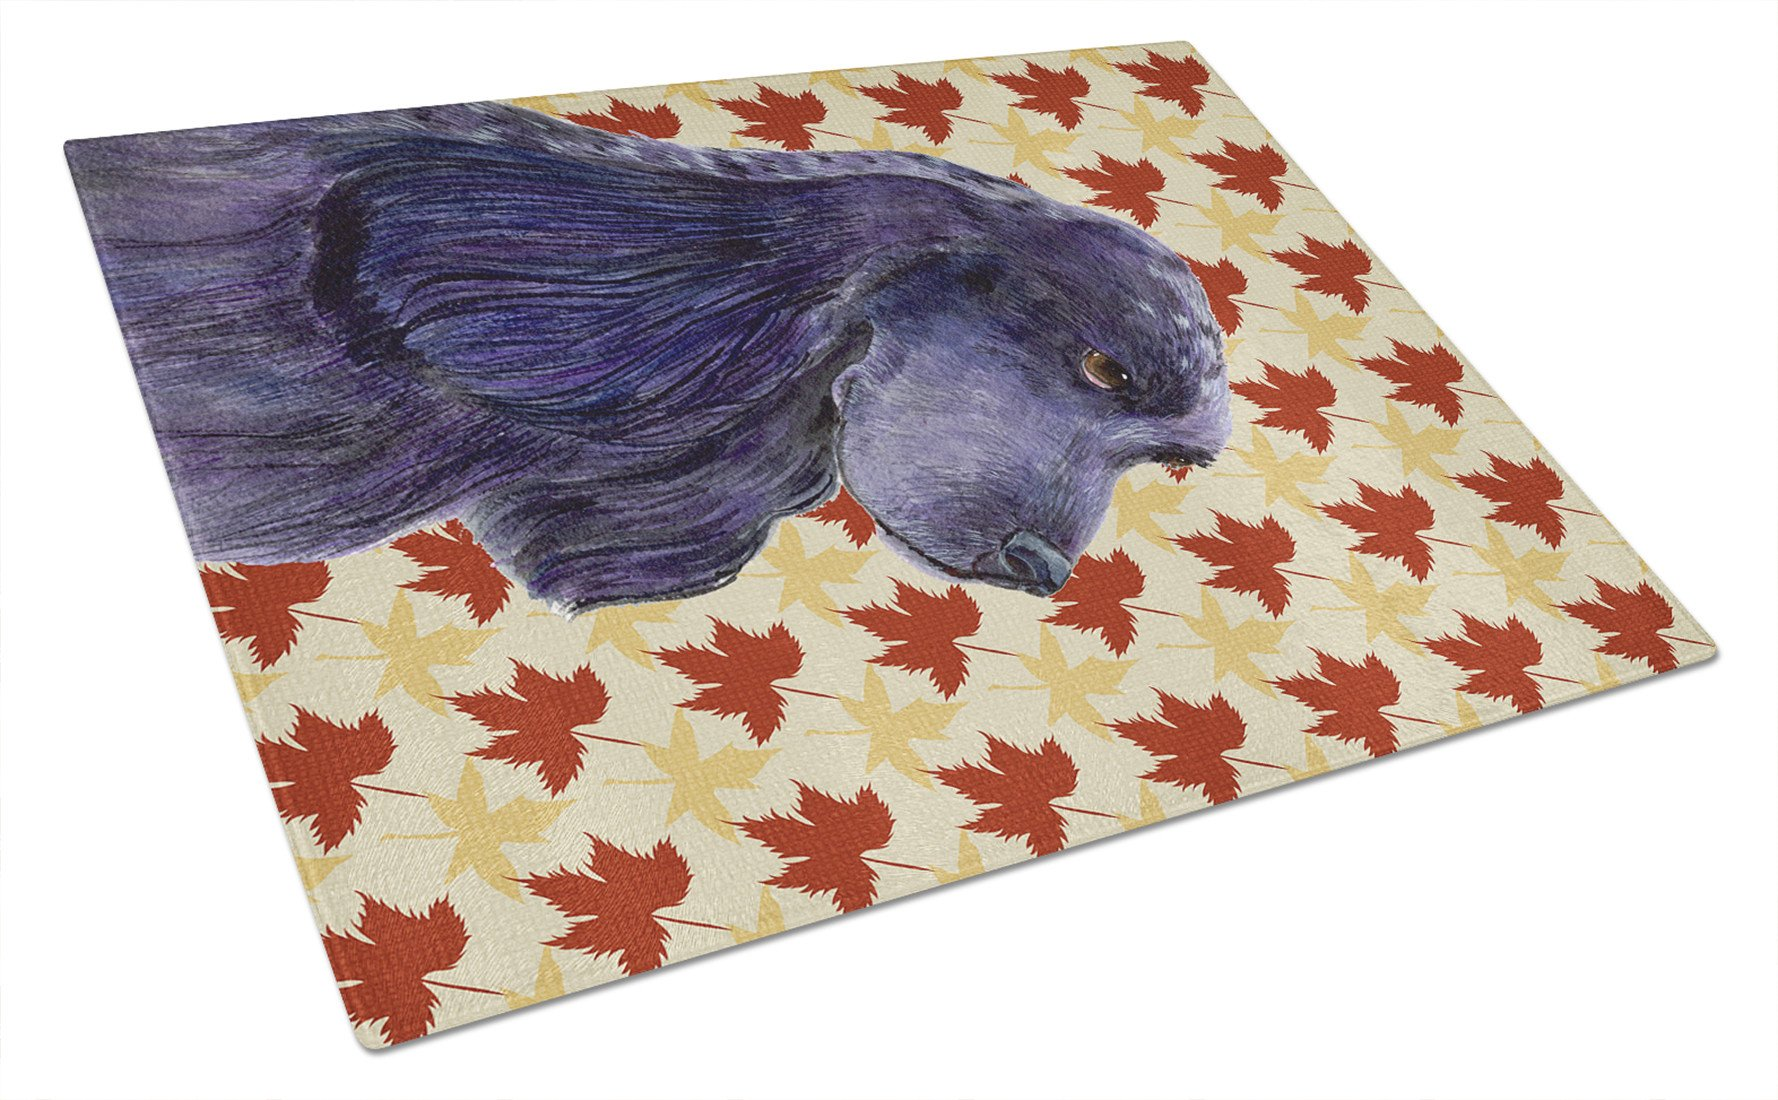 Cocker Spaniel Fall Leaves Portrait Glass Cutting Board Large by Caroline's Treasures